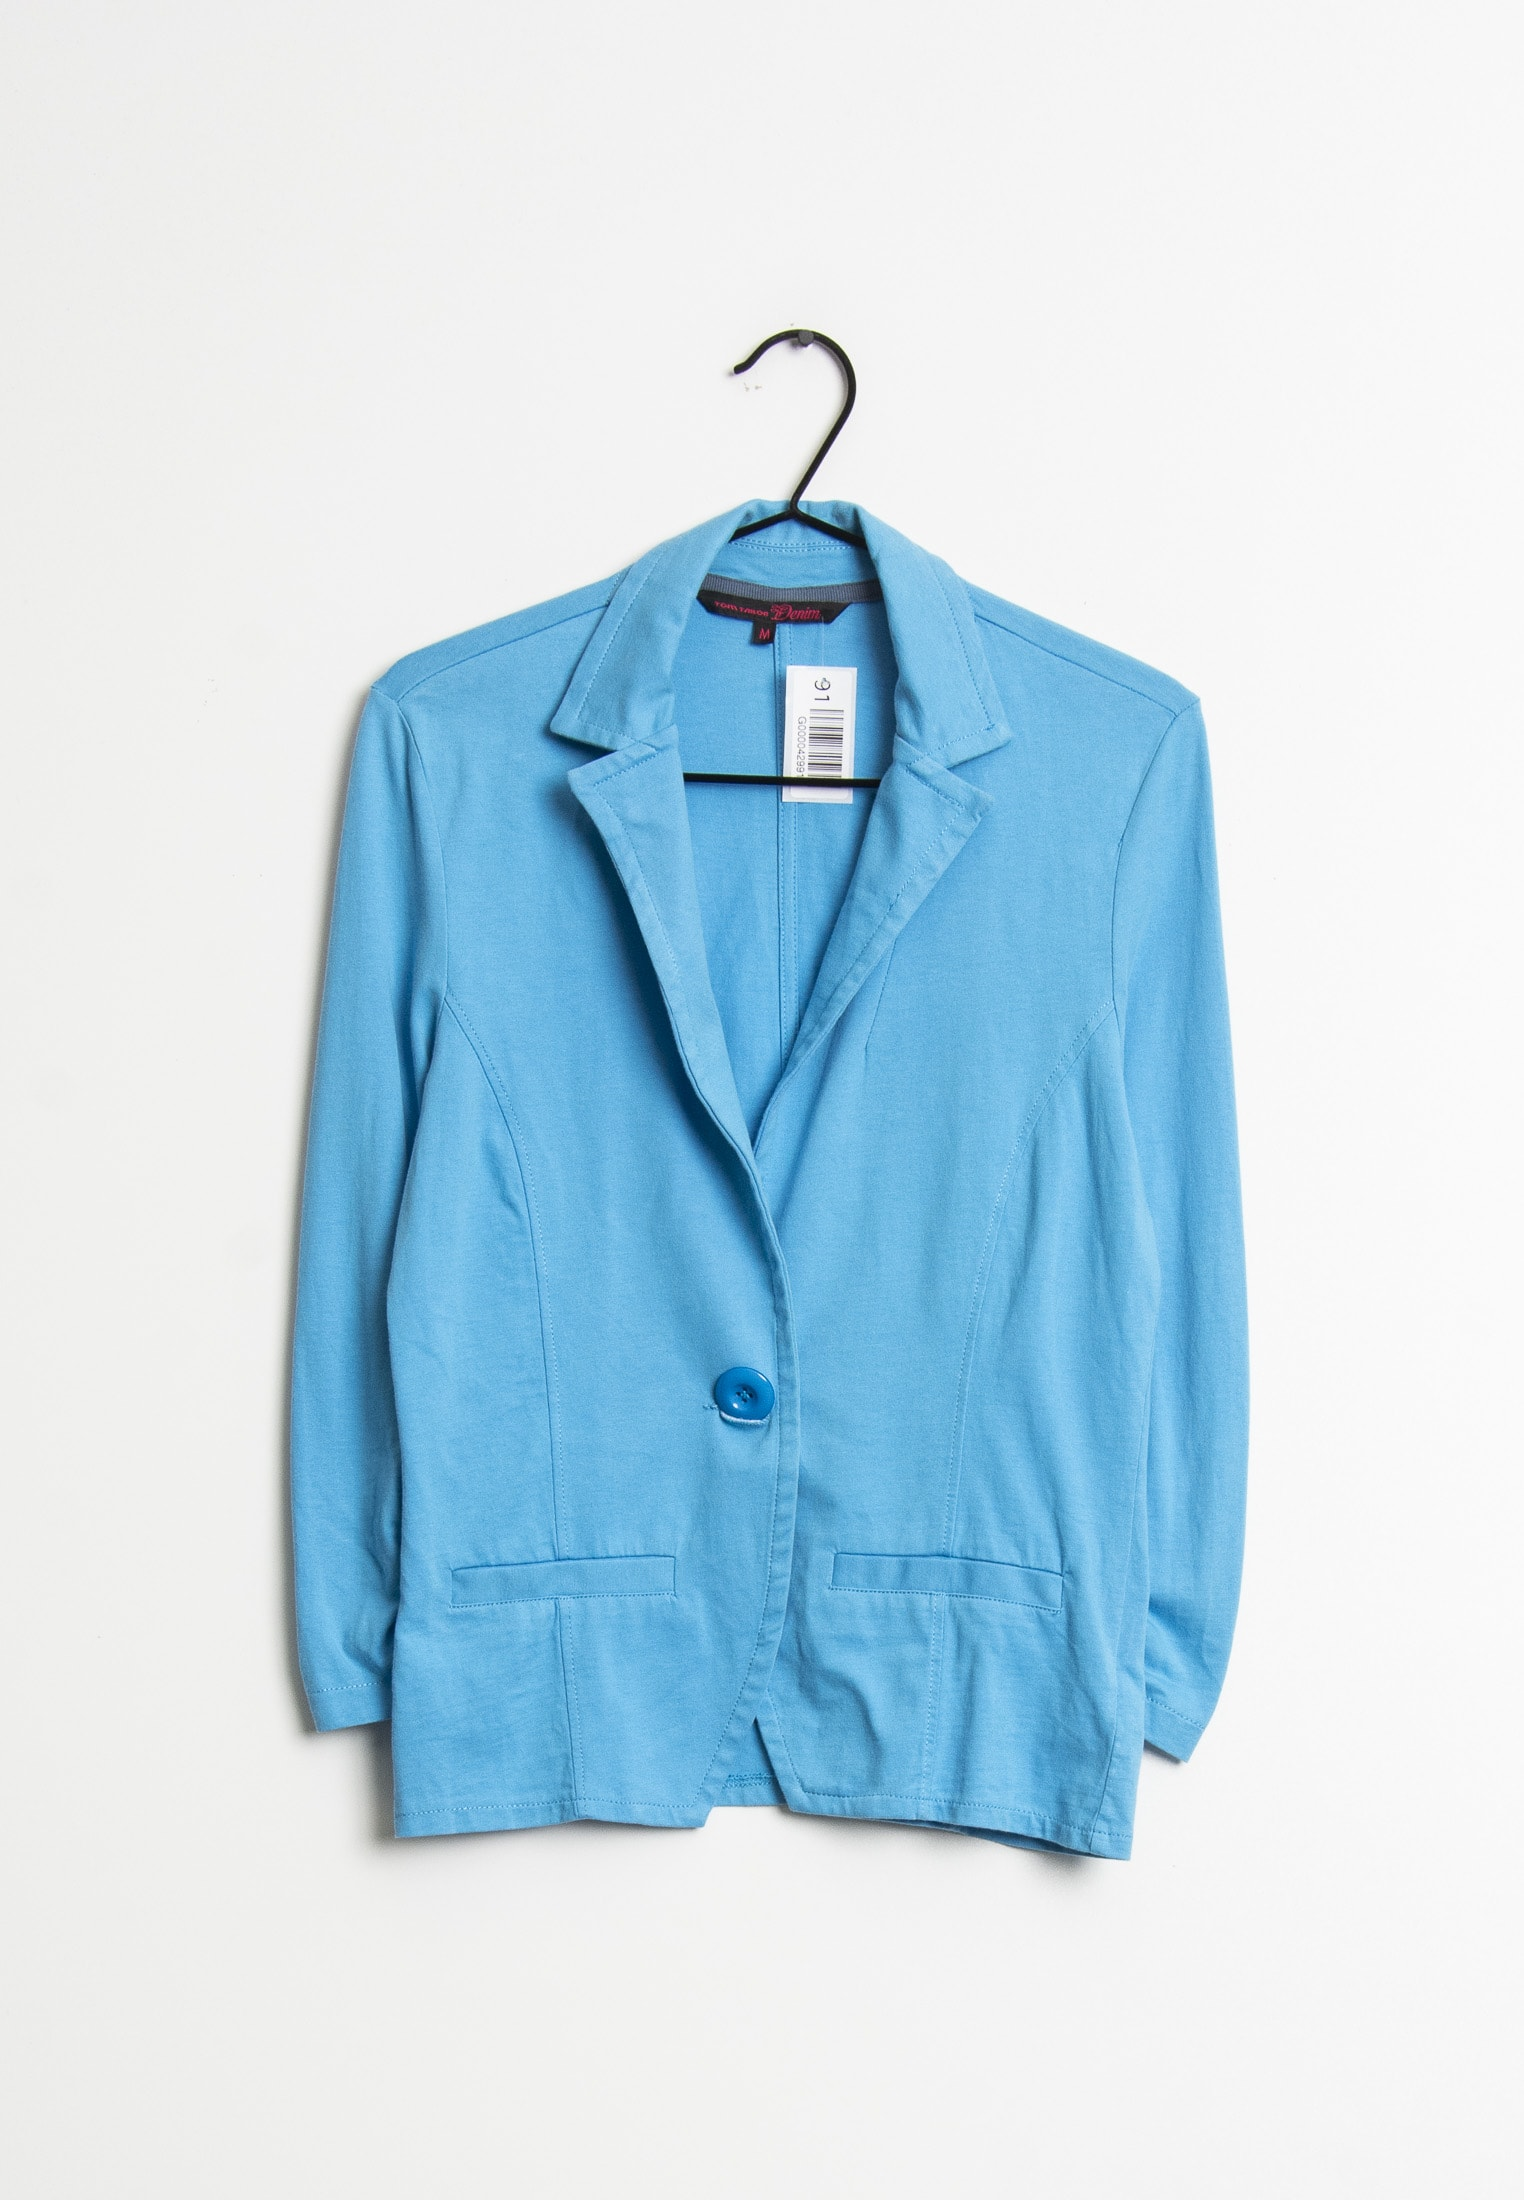 TOM TAILOR Blazer Blau Gr.M